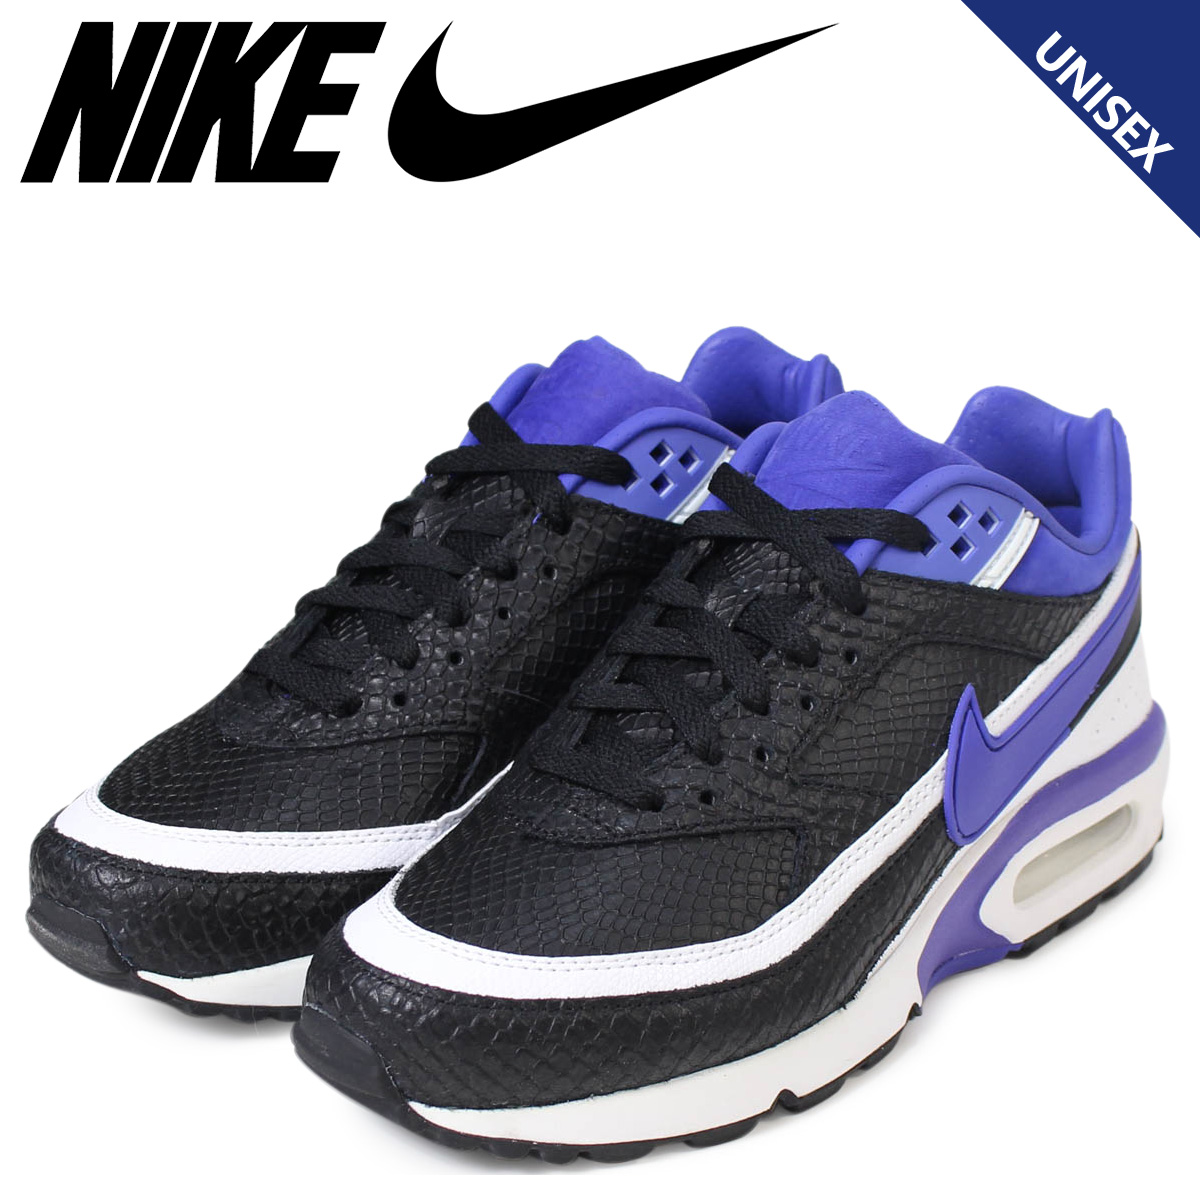 hot sale online bf201 81013 ... Nike NIKE Air Max Ladys sneakers AIR MAX BW PREMIUM 819,523-051 mens  shoes black ...